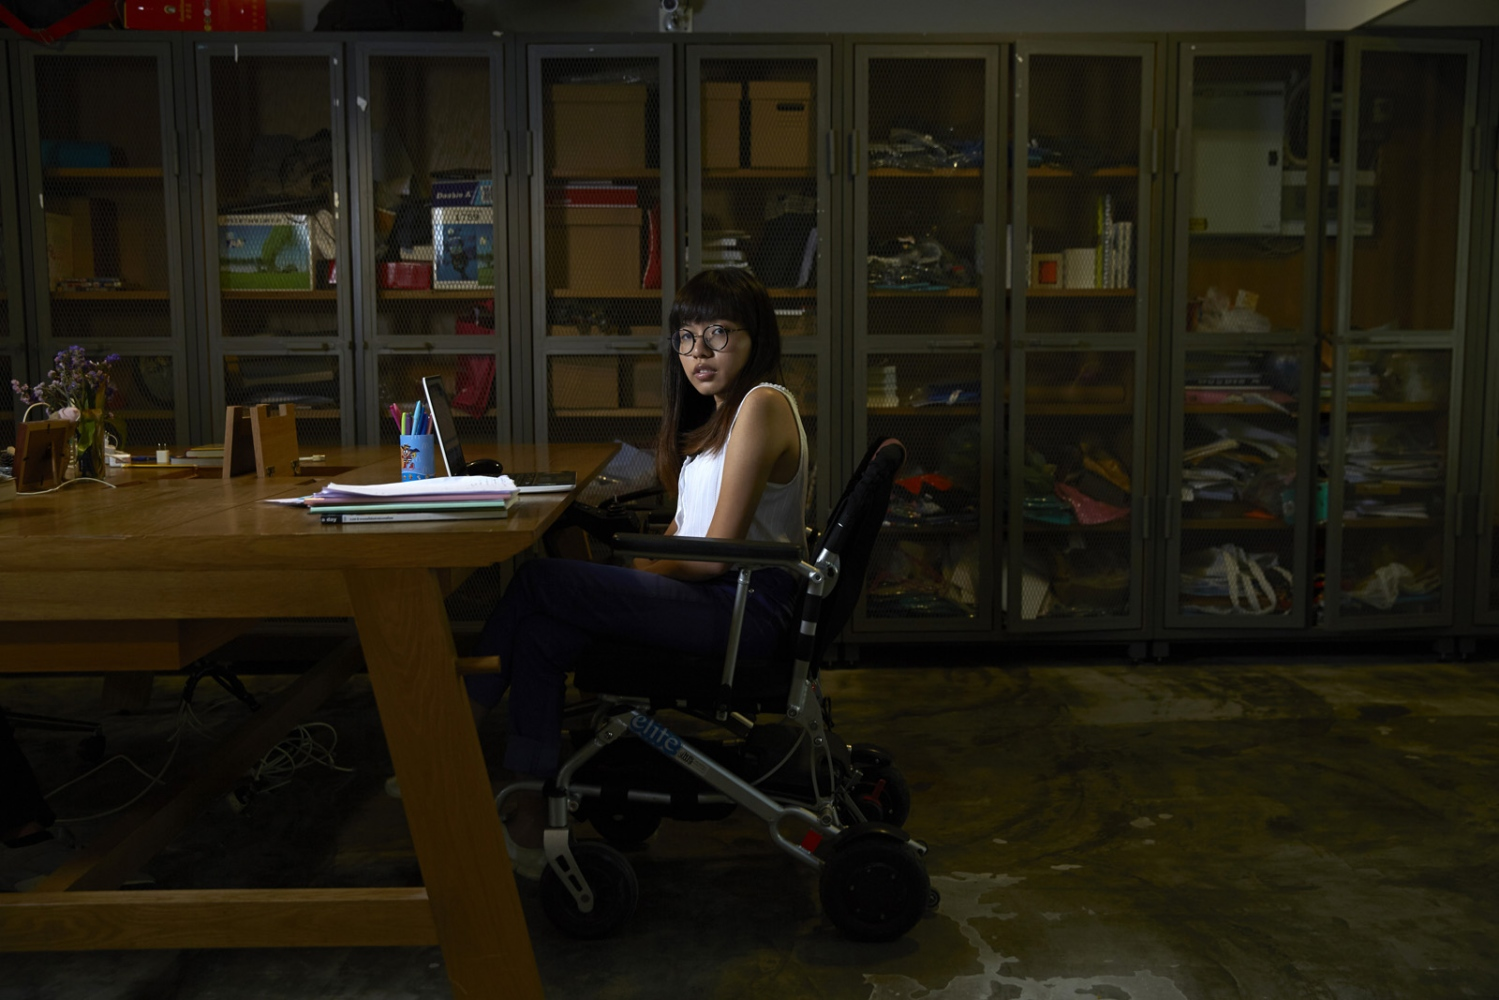 Nalutporn Krairiksh, a Thai journalist in the newsroom of Pratchatai News Agency. She has been physically disabled since she was born having to use a wheelchair and regularly reports on news the rights and issues of disabled members of Thai society.  Bangkok, Thailand